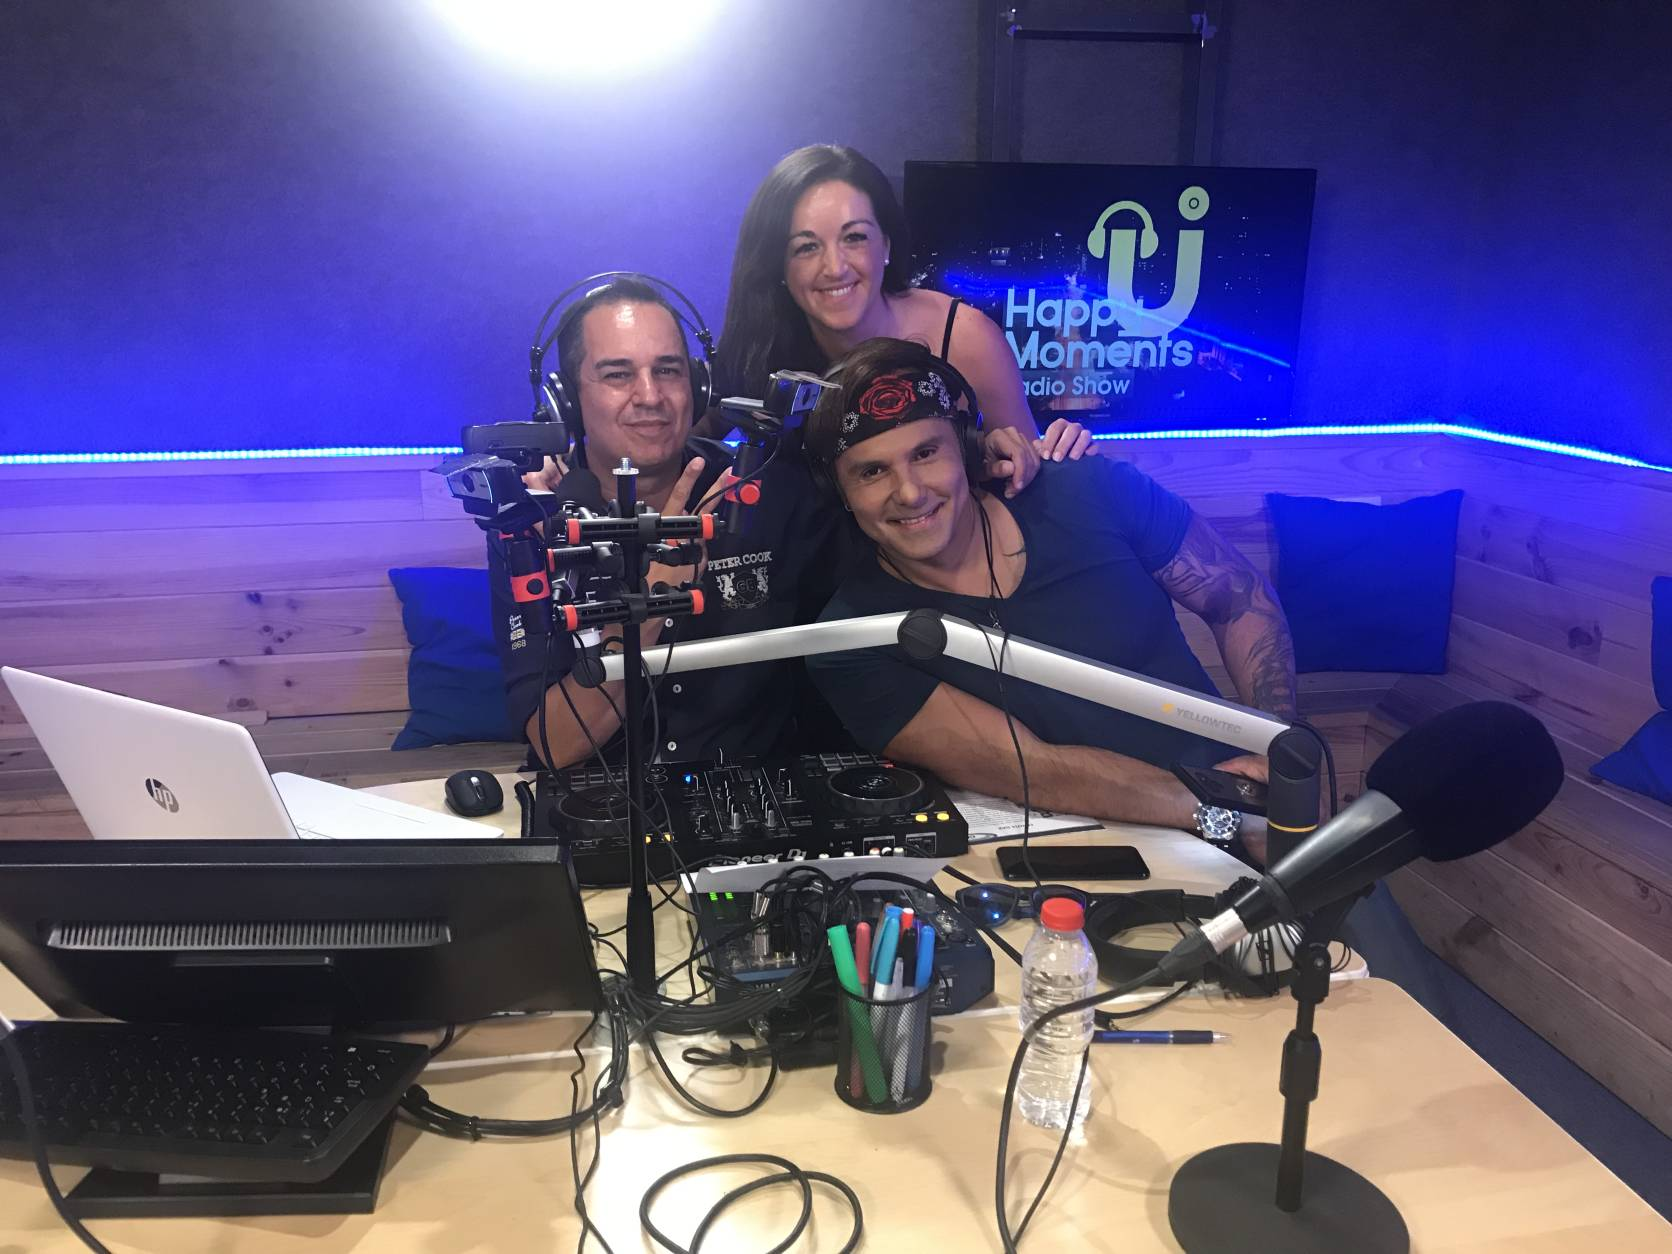 COYOTE DAX EN Happymoments radio show (3)